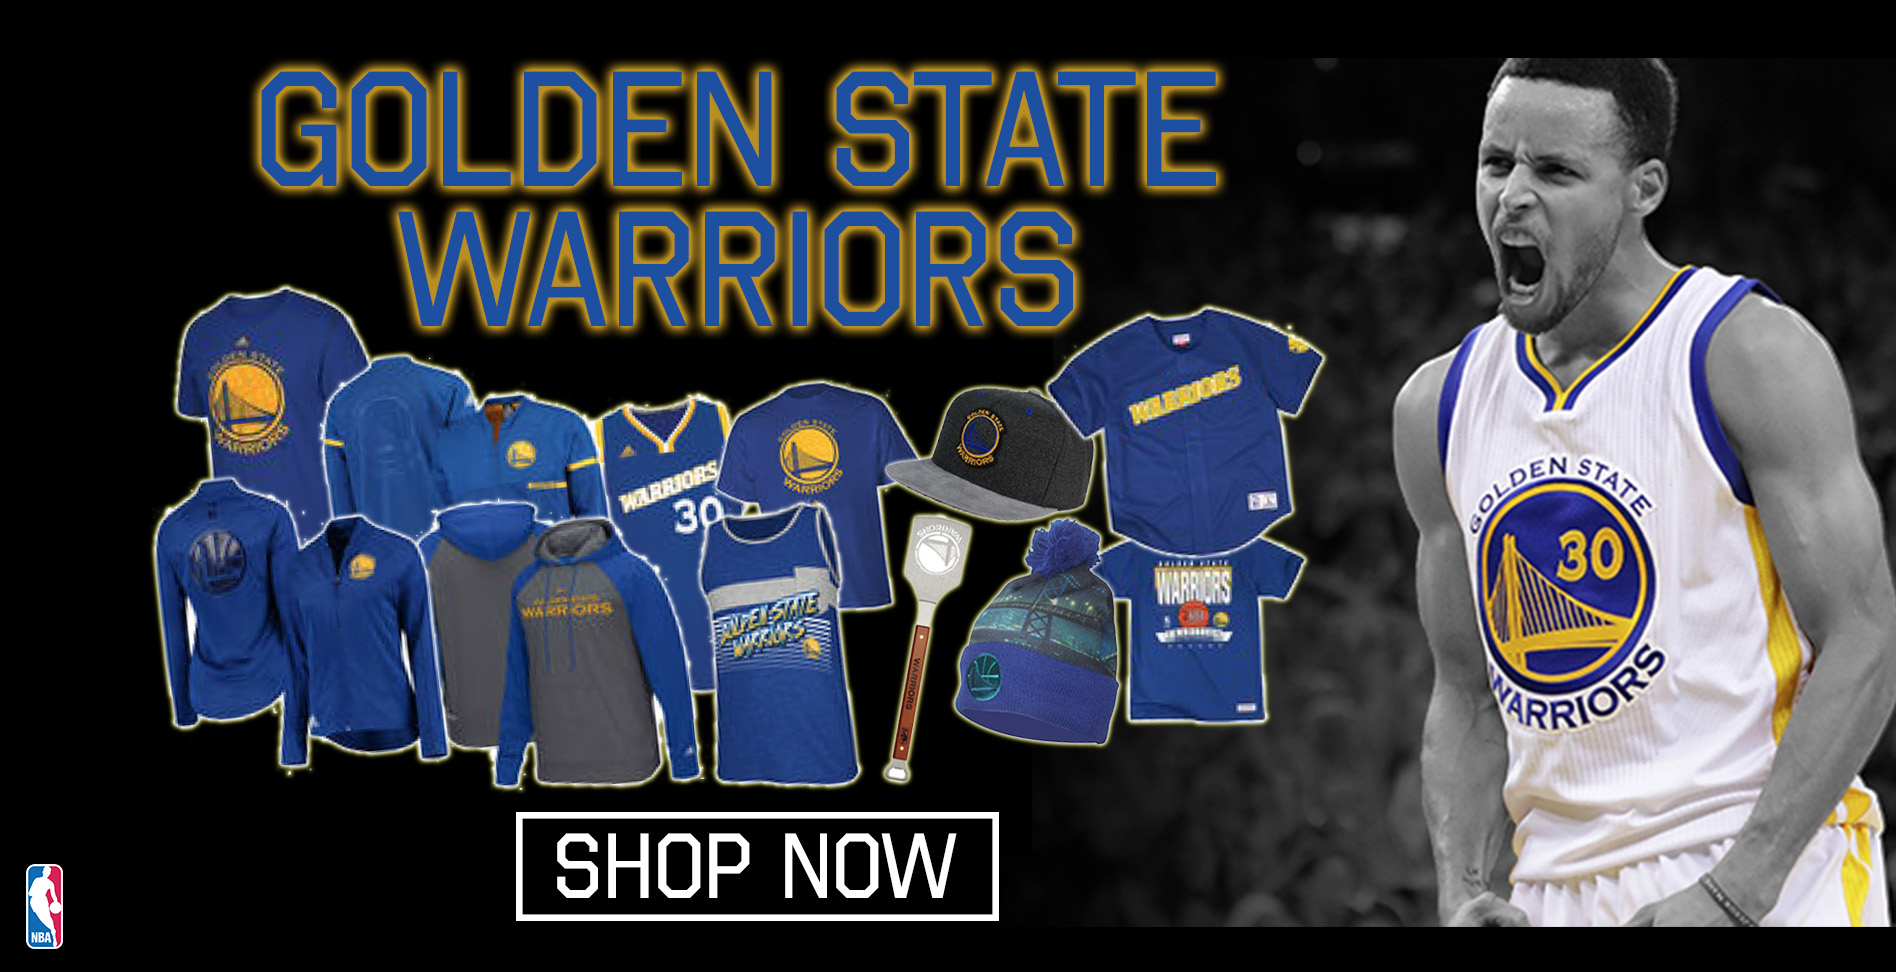 Golden State Warriors Merchendise